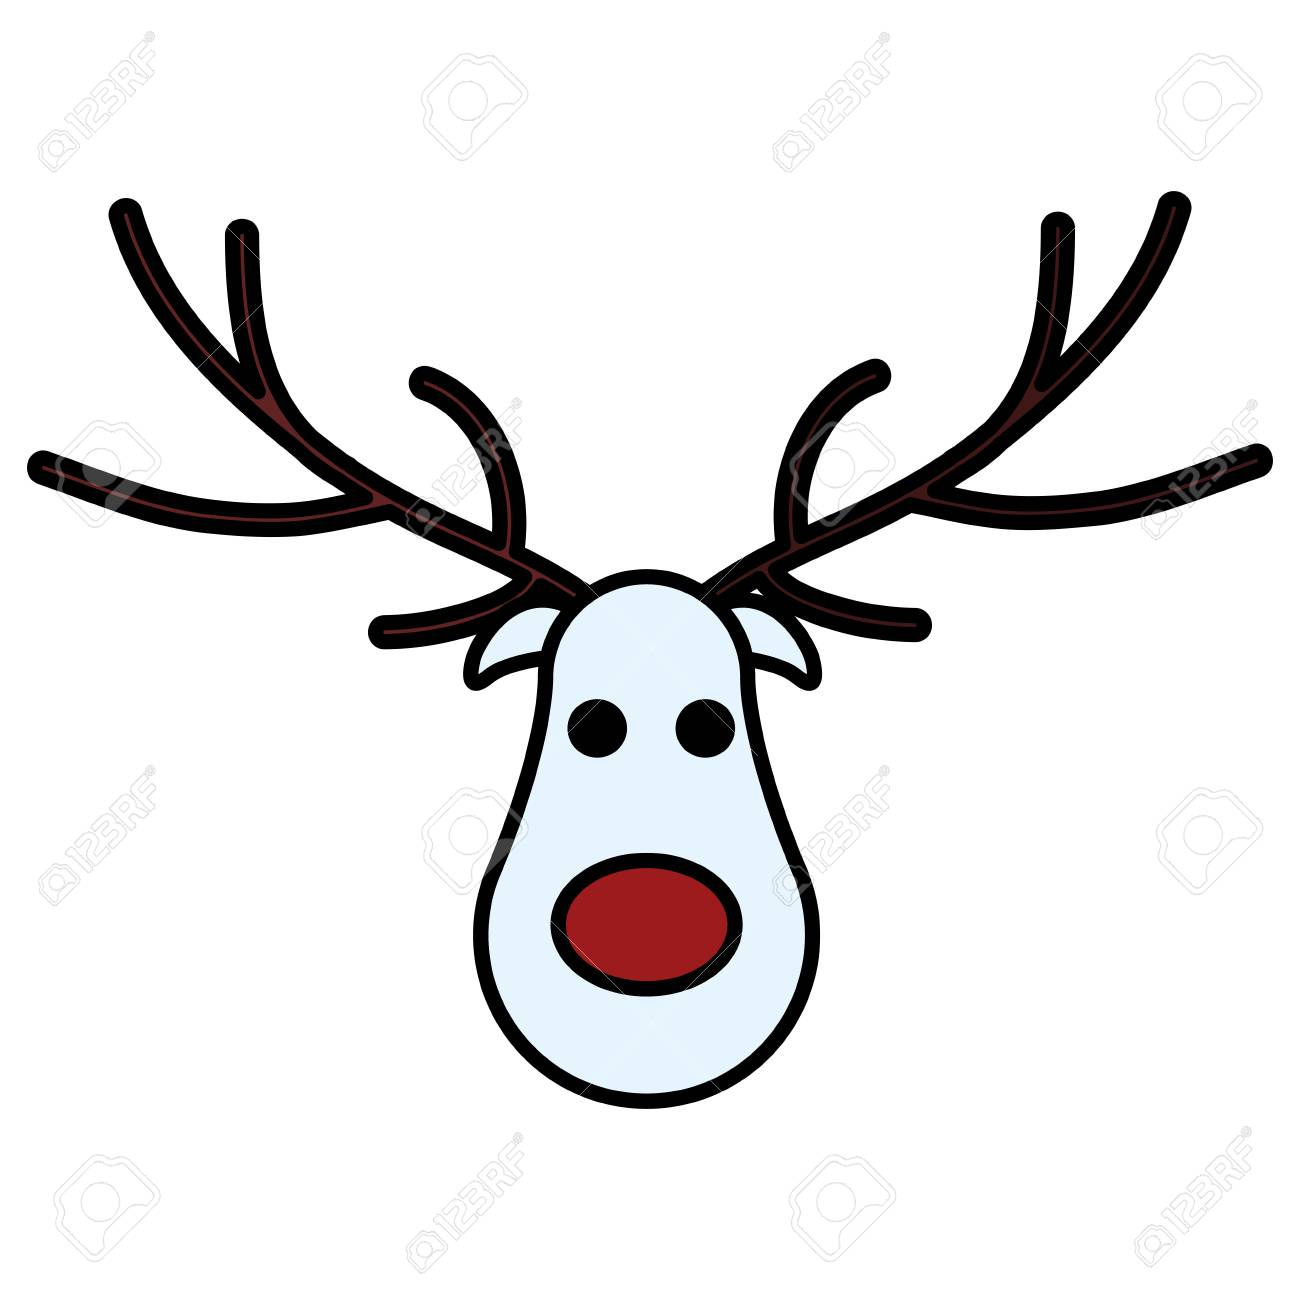 Cartoon christmas deer with red nose over white background, vector illustration - 126861793